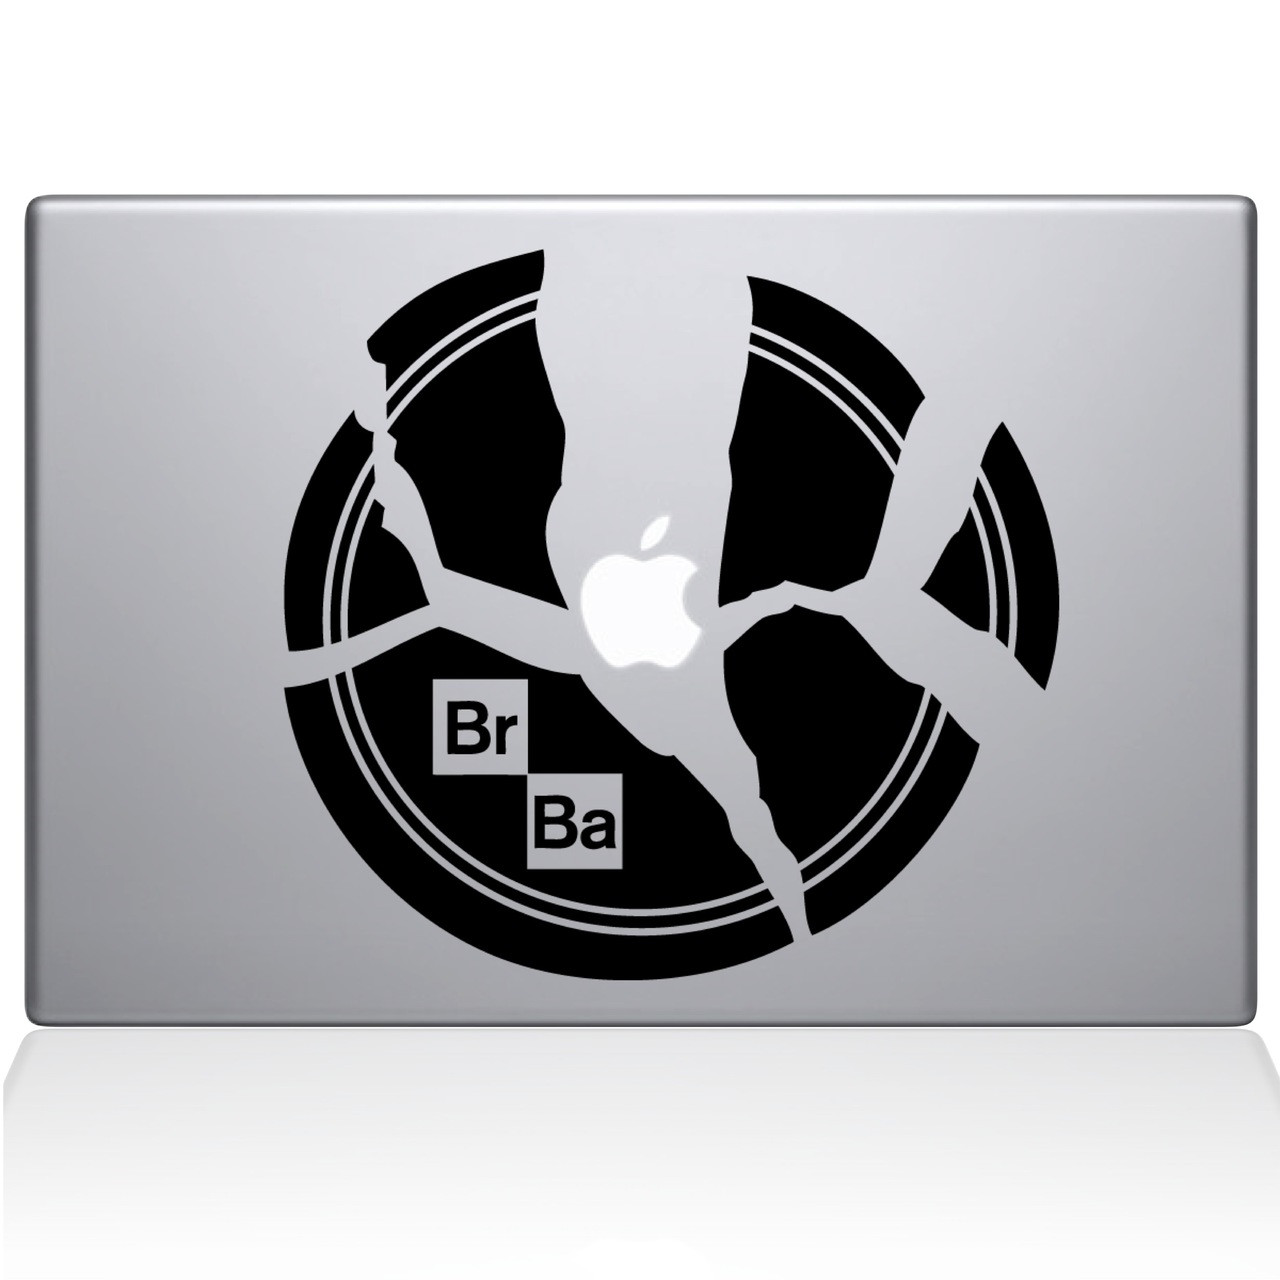 Breaking Bad Plate | Macbook Decals | The Decal Guru